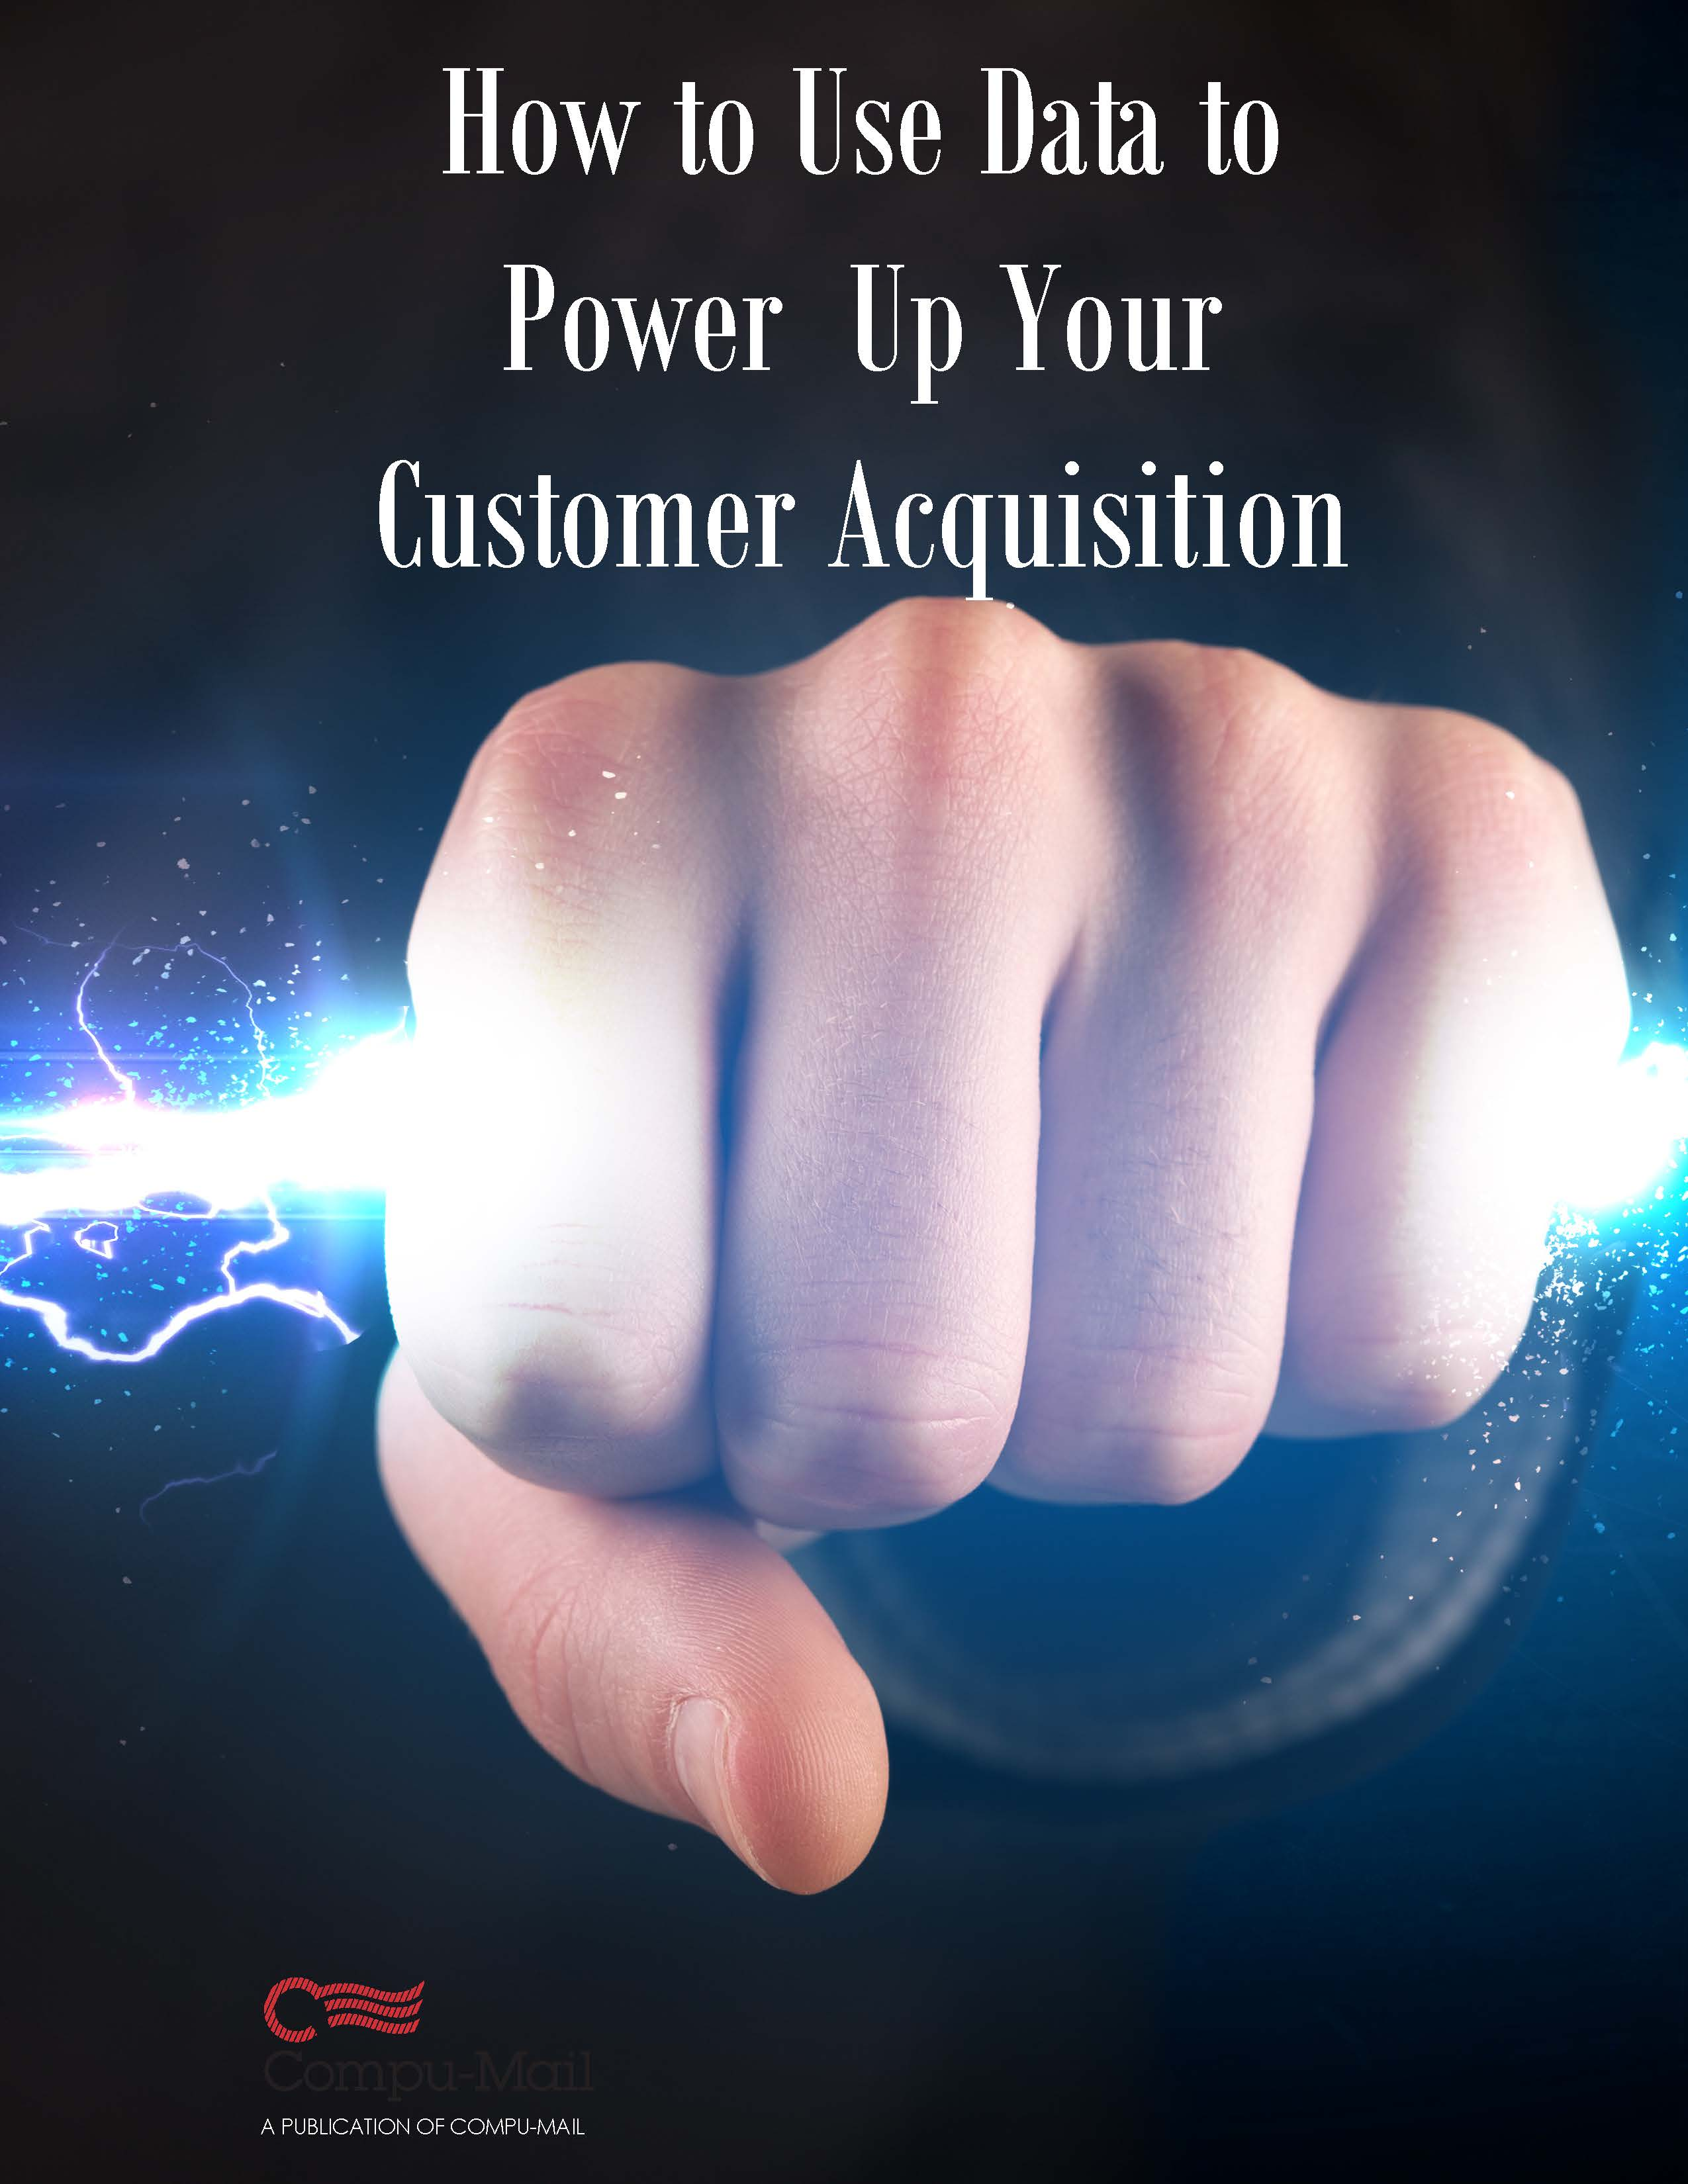 ebook-how-to-use-data-to-power-up-your-customer-acquisition_Page_1